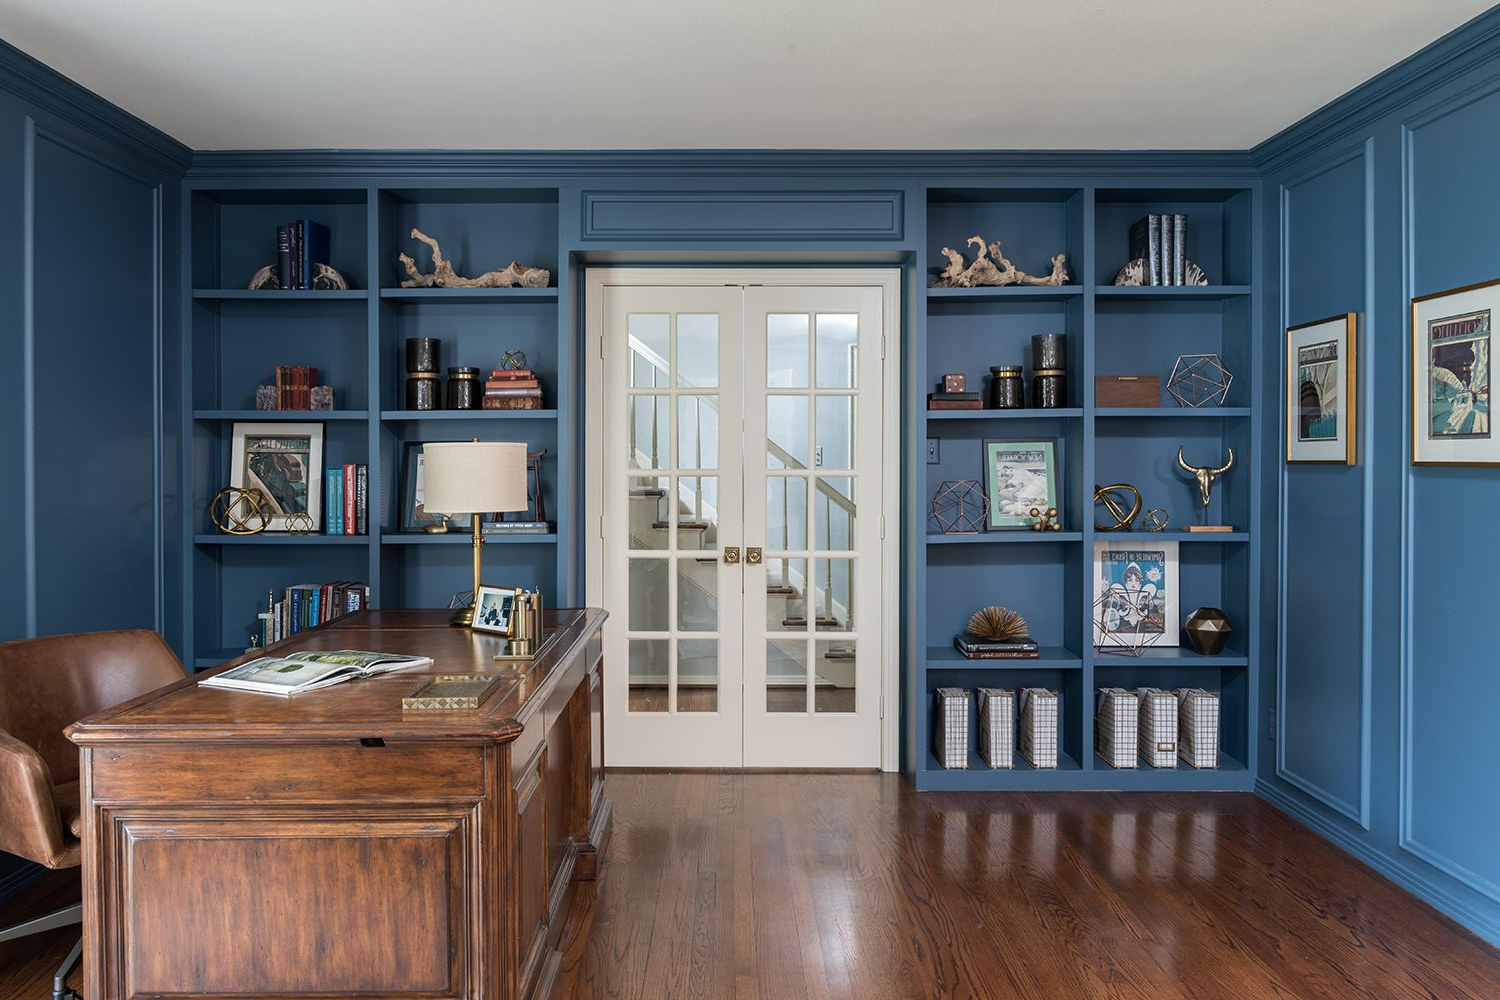 25 Stylish Built In Bookshelves – Floor To Ceiling Shelving Inside Kara 4 Door Accent Cabinets (View 19 of 20)